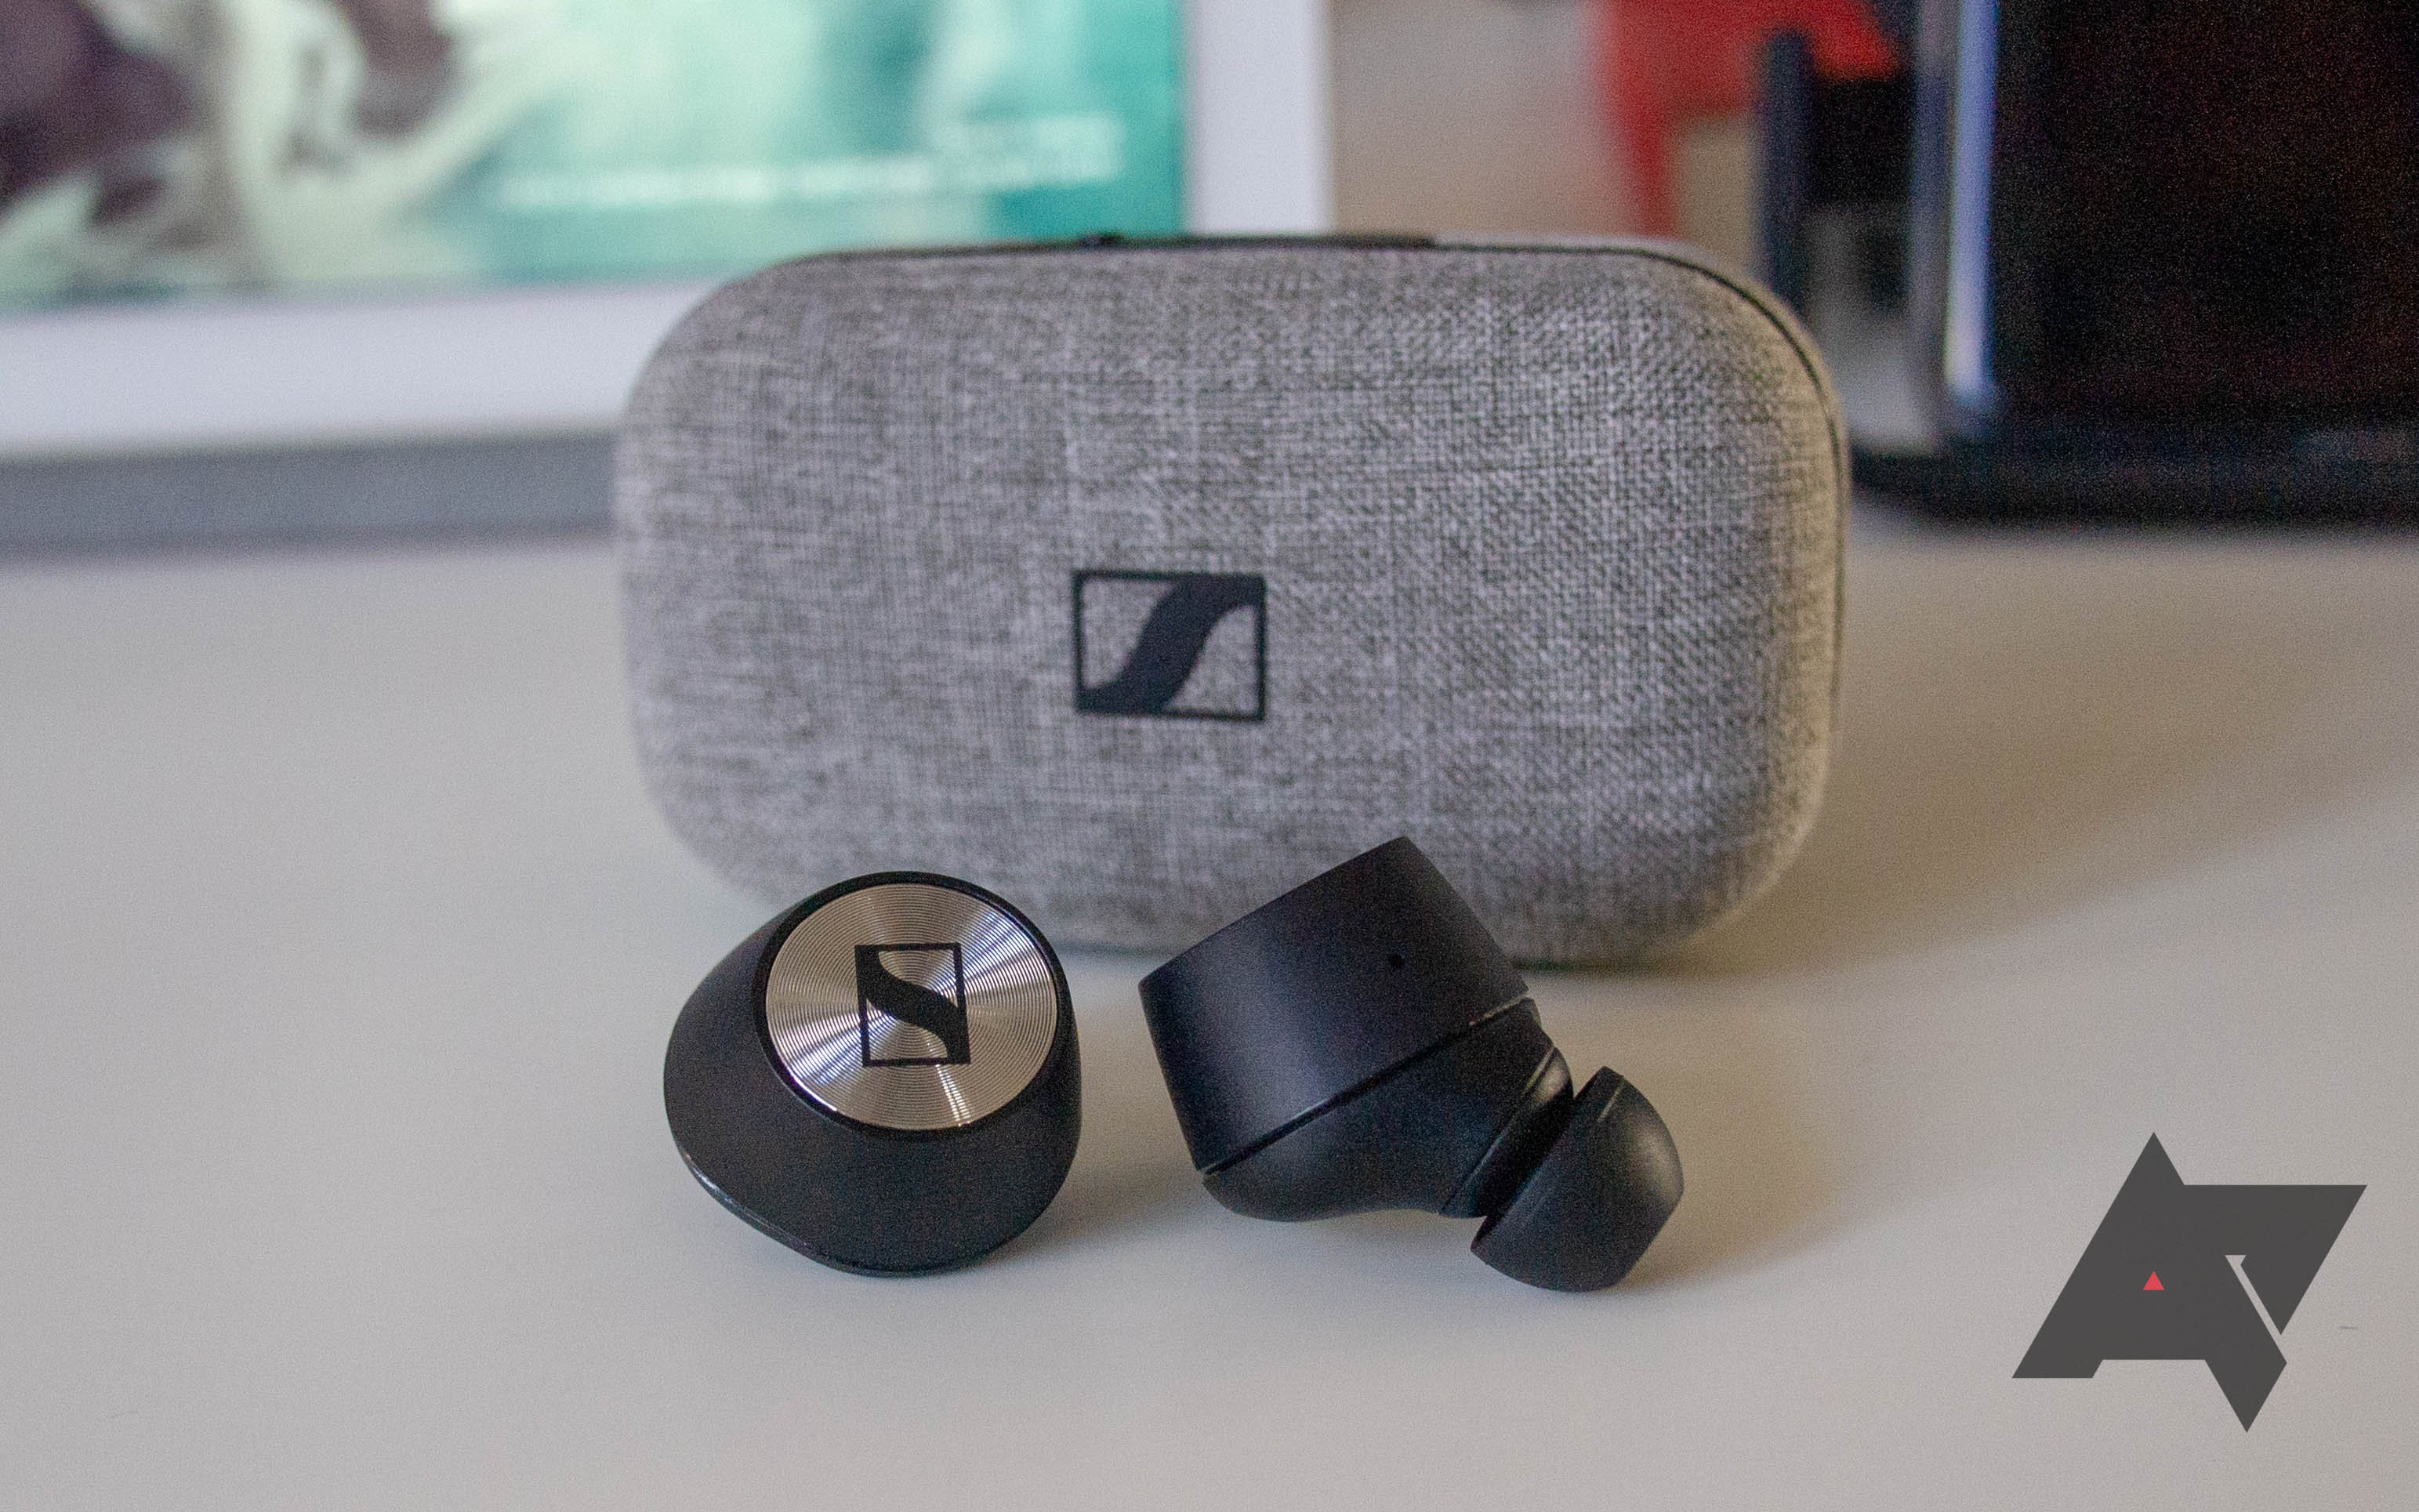 b12db3f41ed There's no dearth of true wireless earbuds options out there, but most  deliver sound quality that's good-ish, at best. To get superior audio  quality, ...